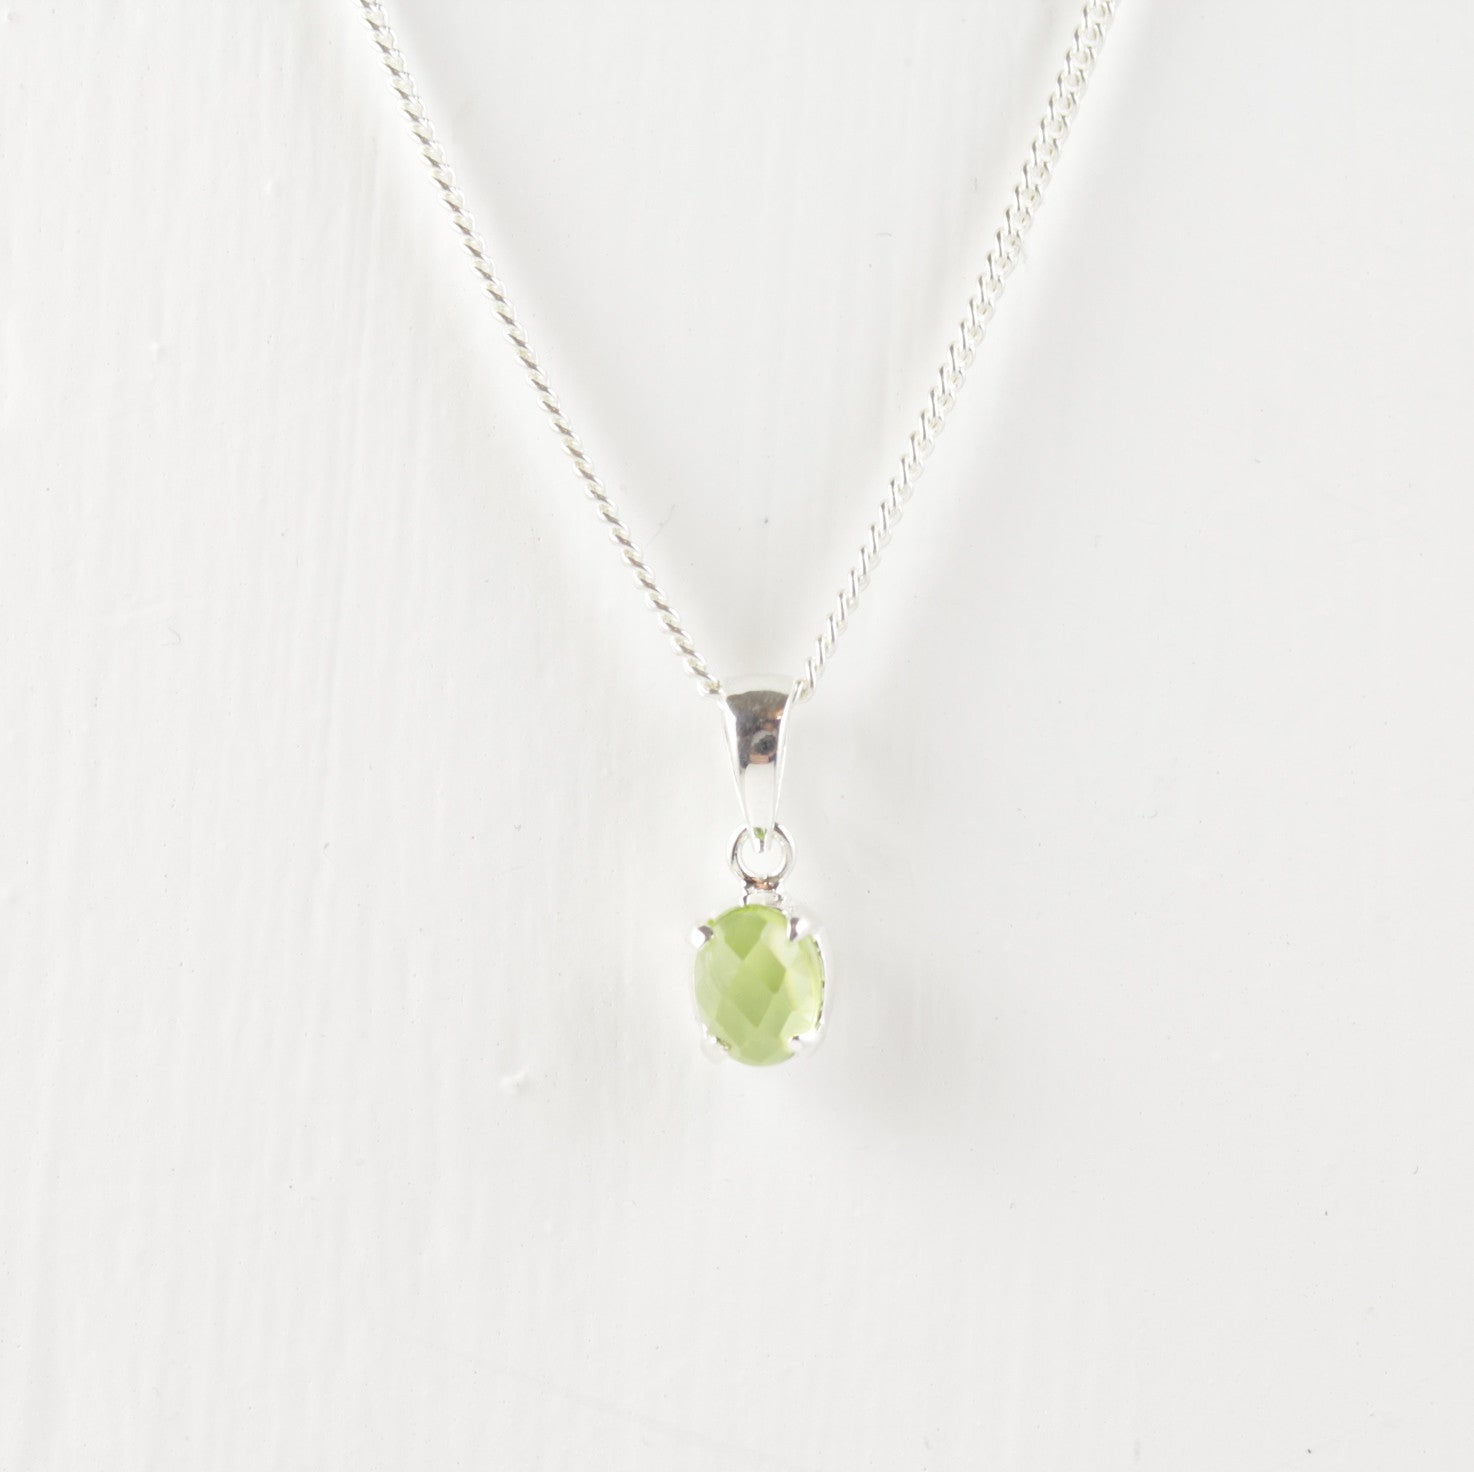 birthstone collection jewelry peridot silver swirls necklaces shop artisan sterling necklace stone flower pendant august beadage